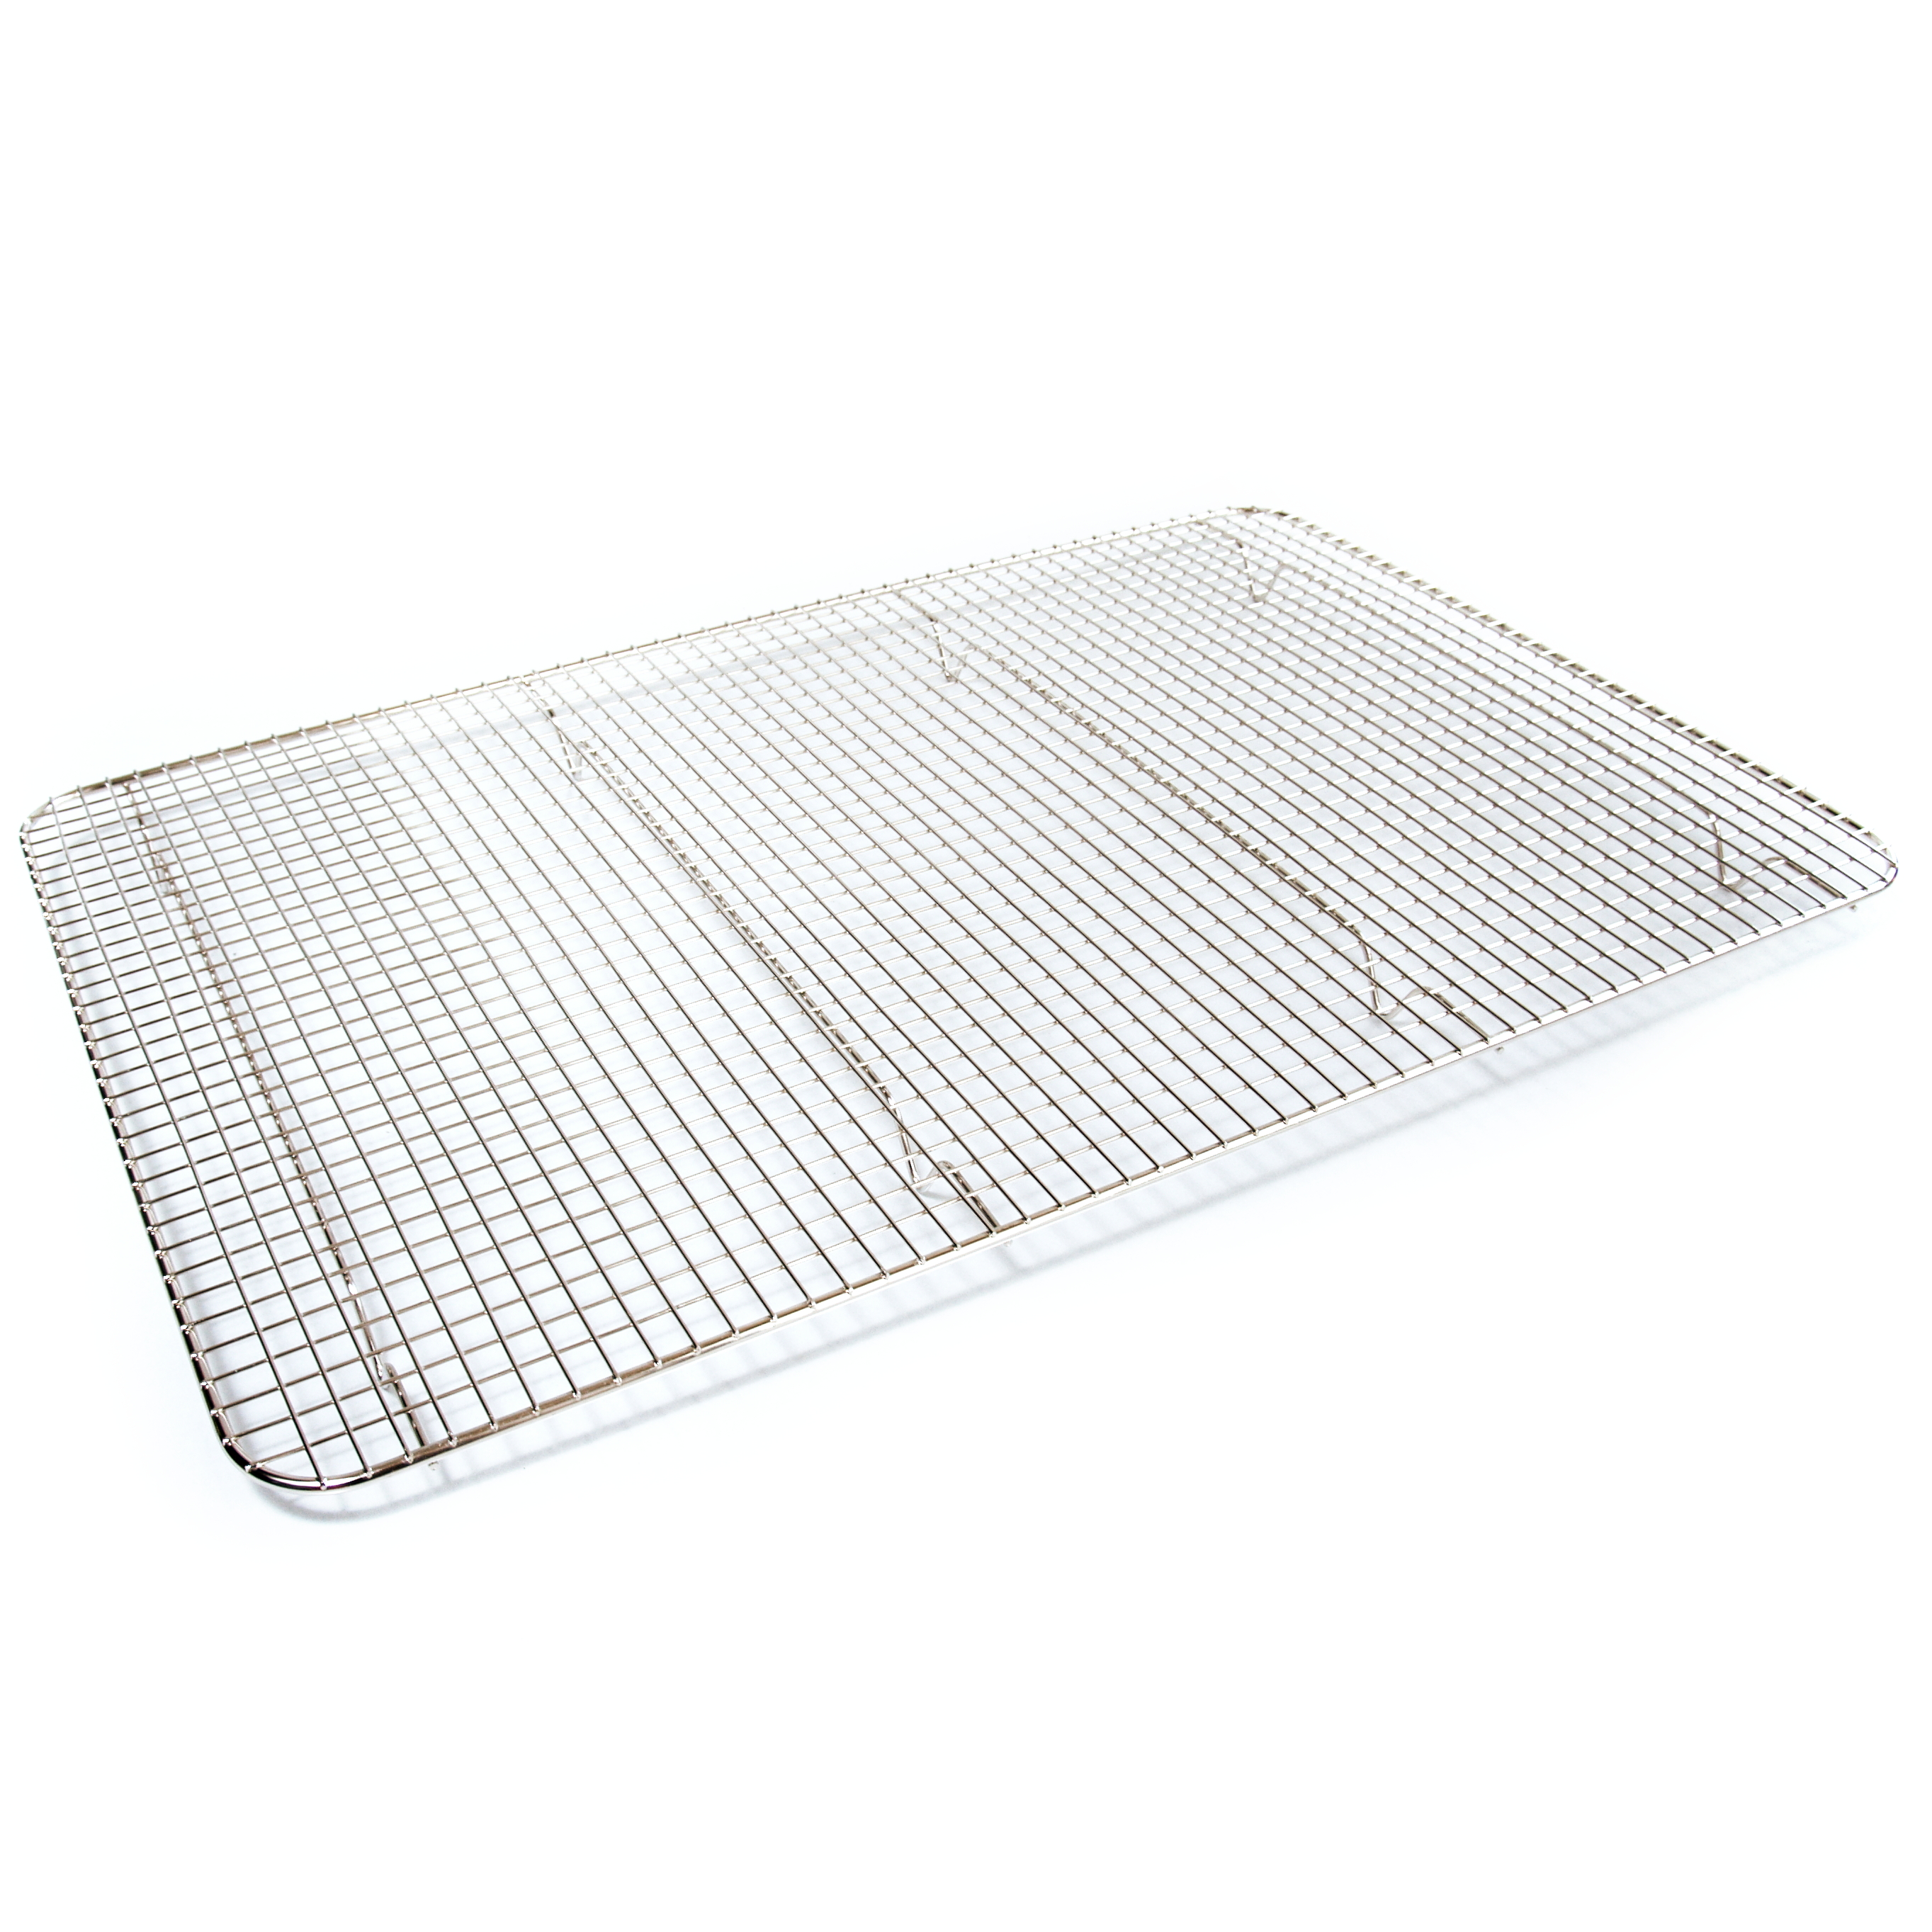 Browne Basics Double Nickel Plated Rectangular Cooling Grate, 24 x 16 Inch